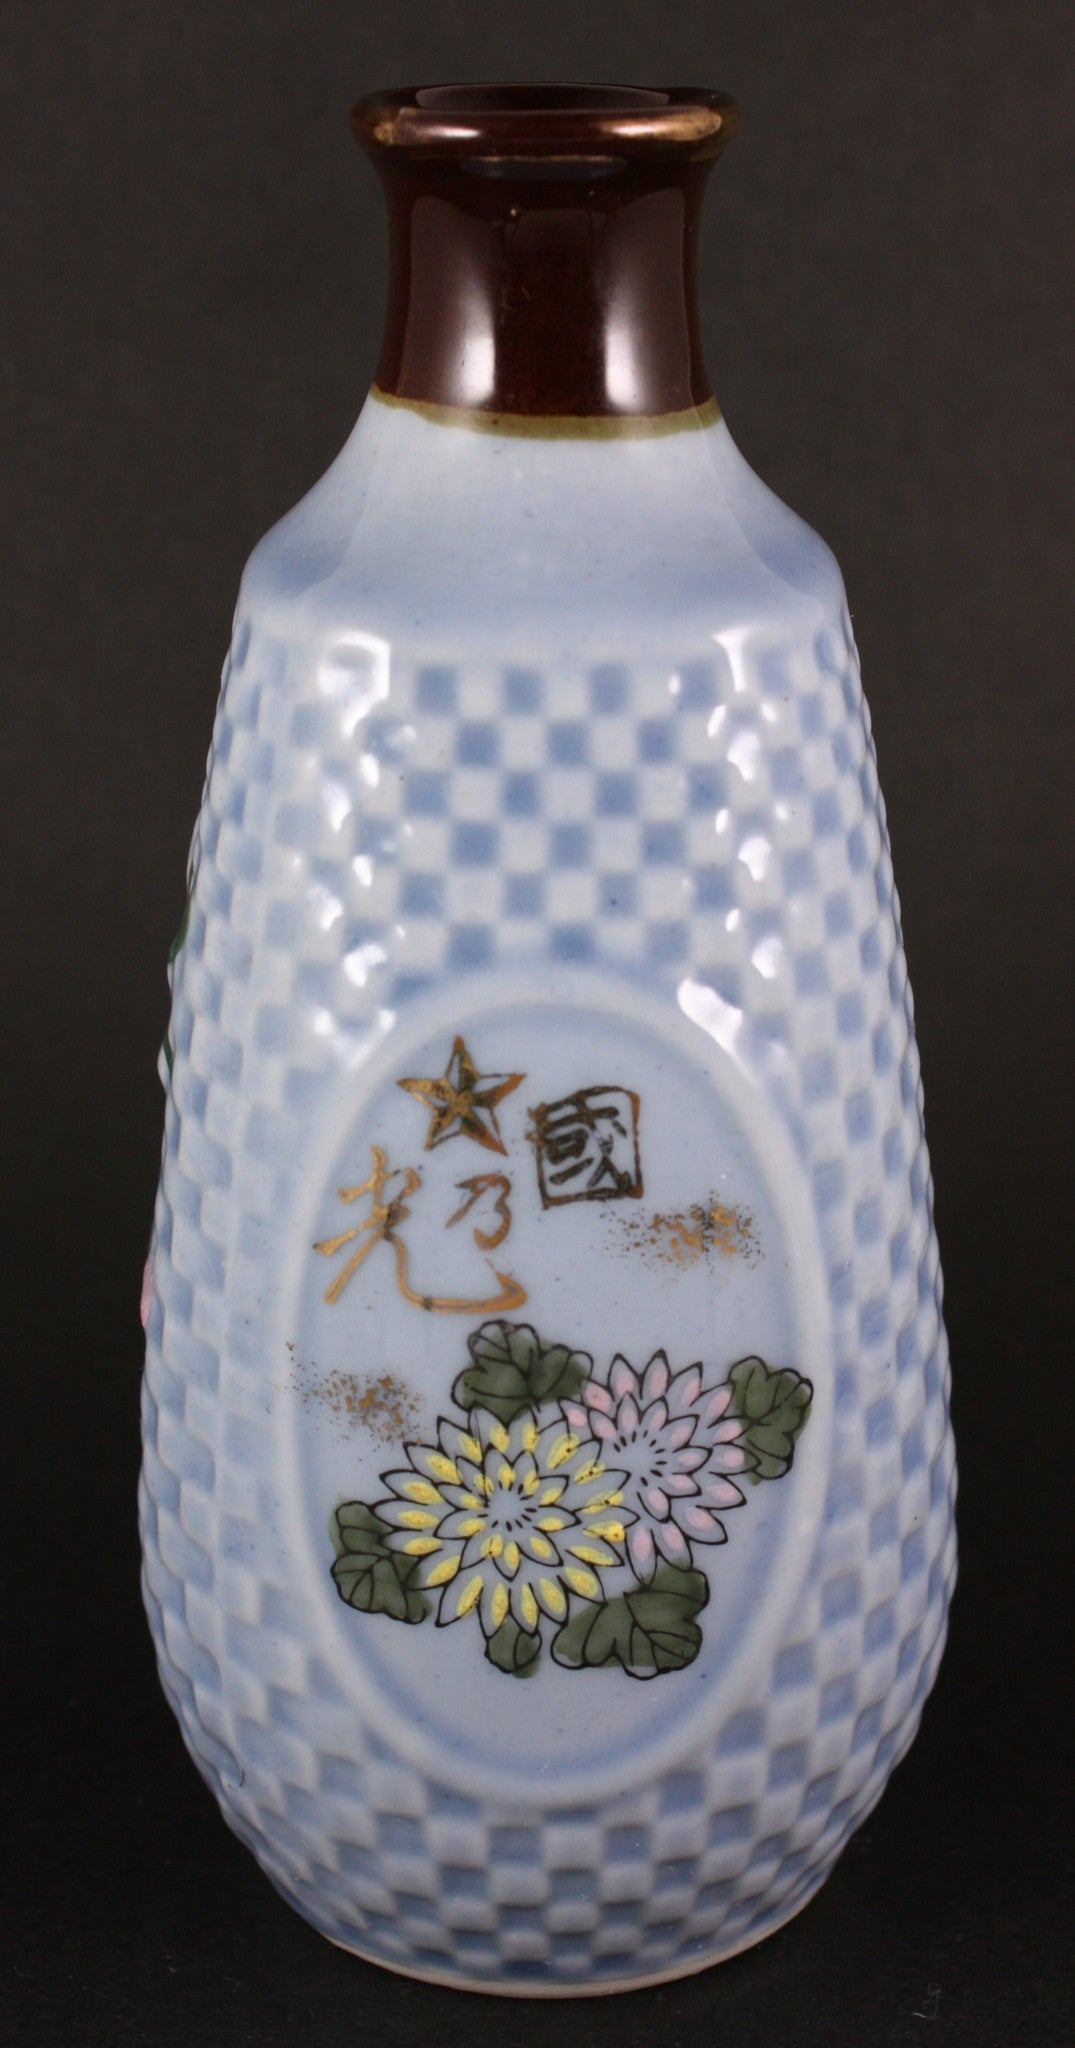 Antique Japanese Glory to the Nation Army Sake Bottle